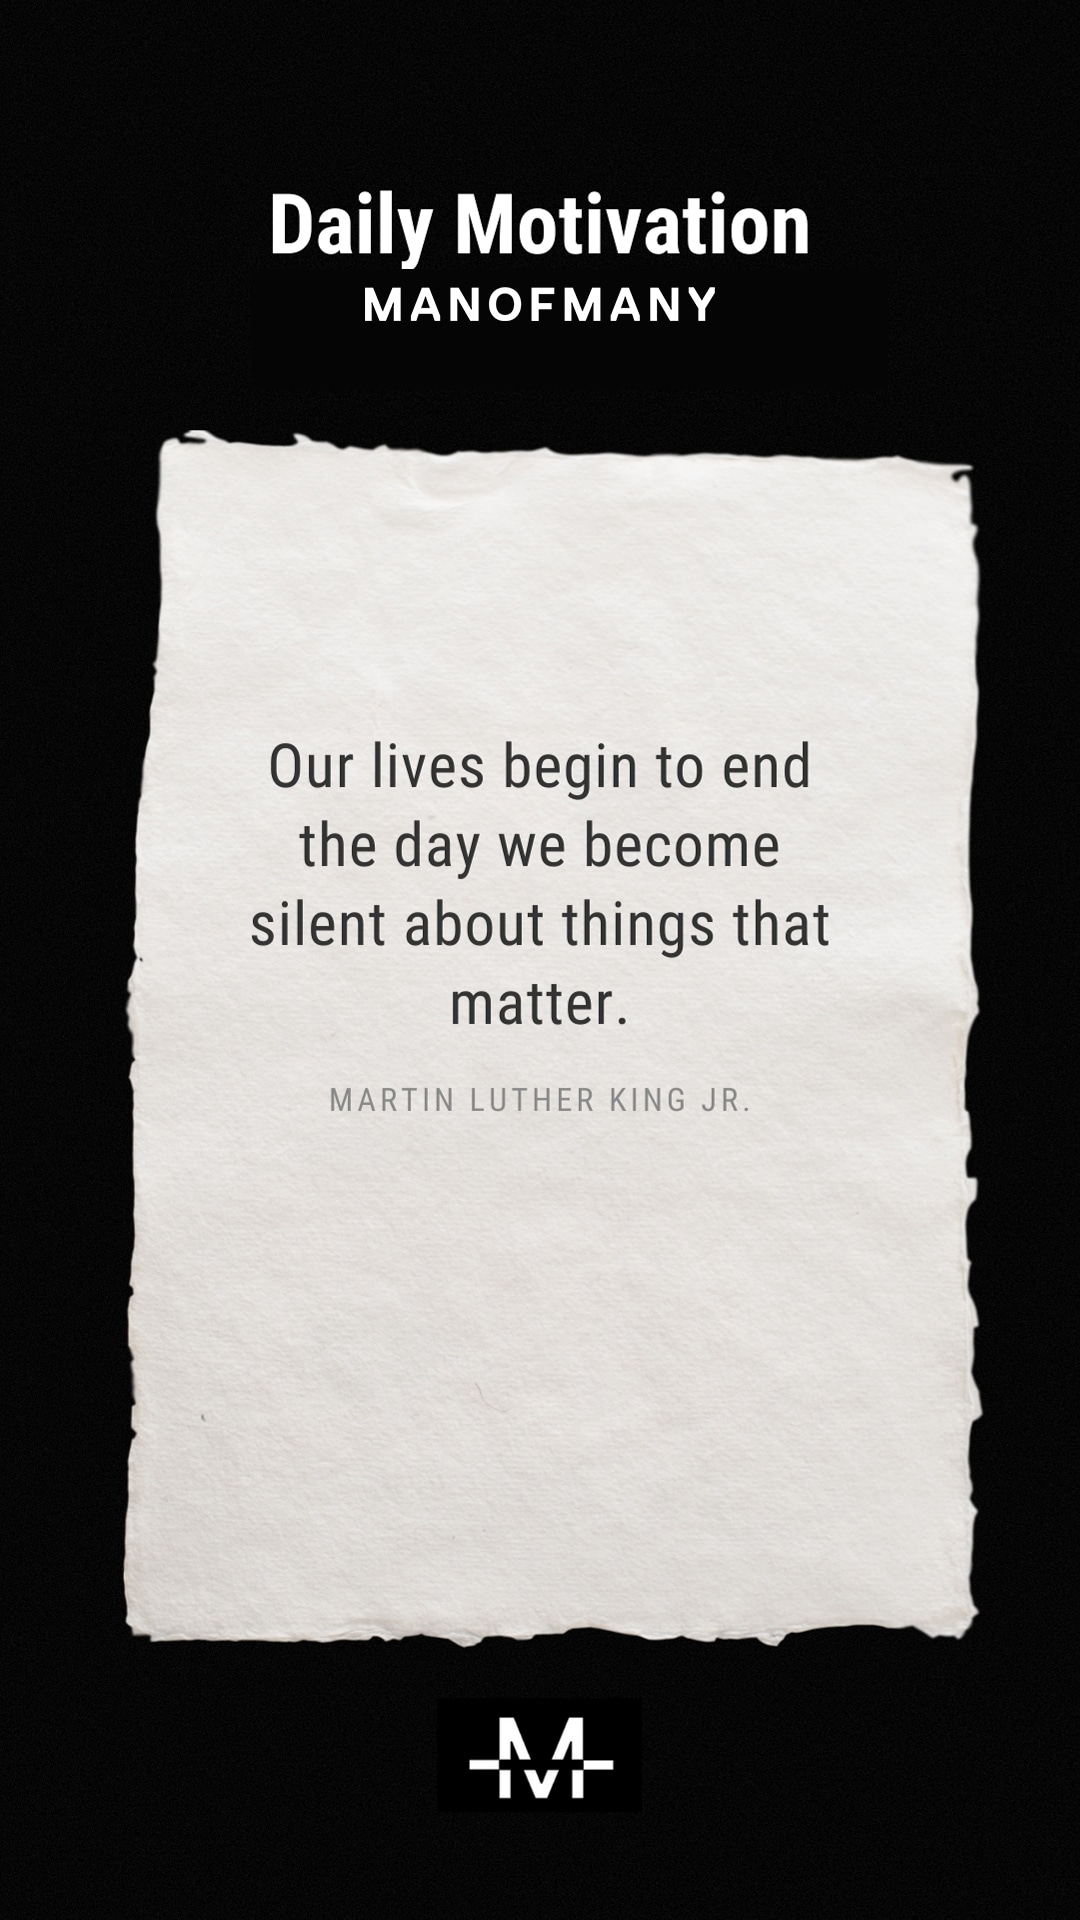 Our lives begin to end the day we become silent about things that matter. –Martin Luther King Jr. quote